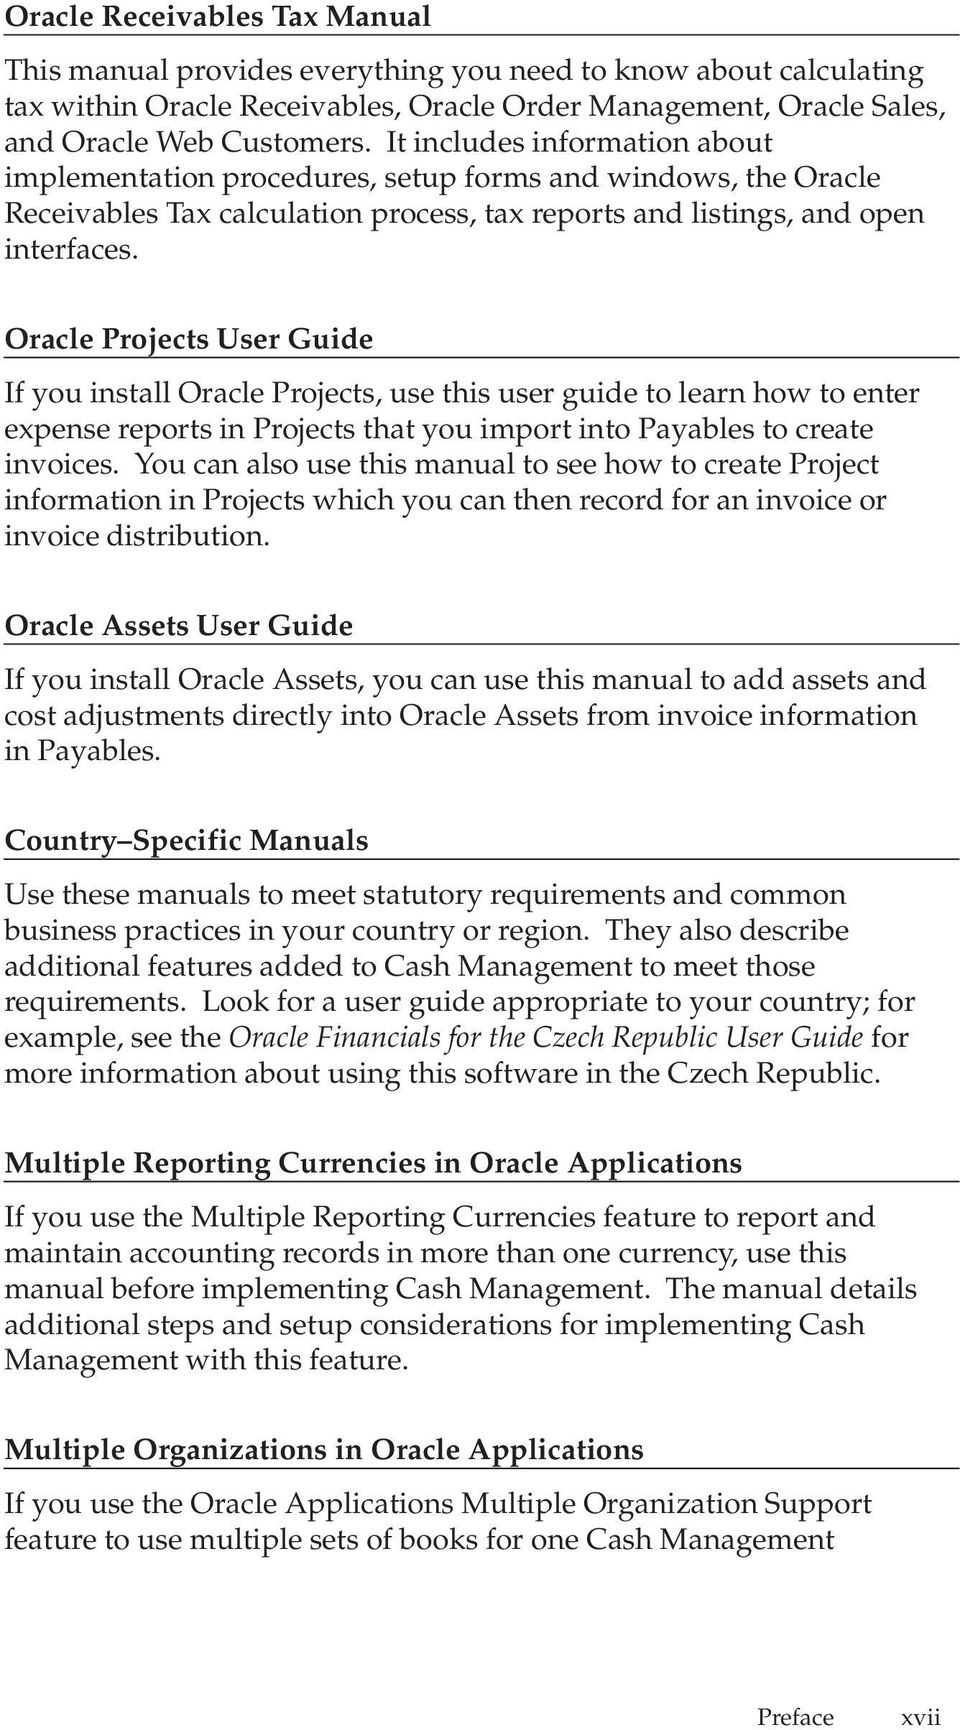 Oracle Cash Management User Guide - PDF